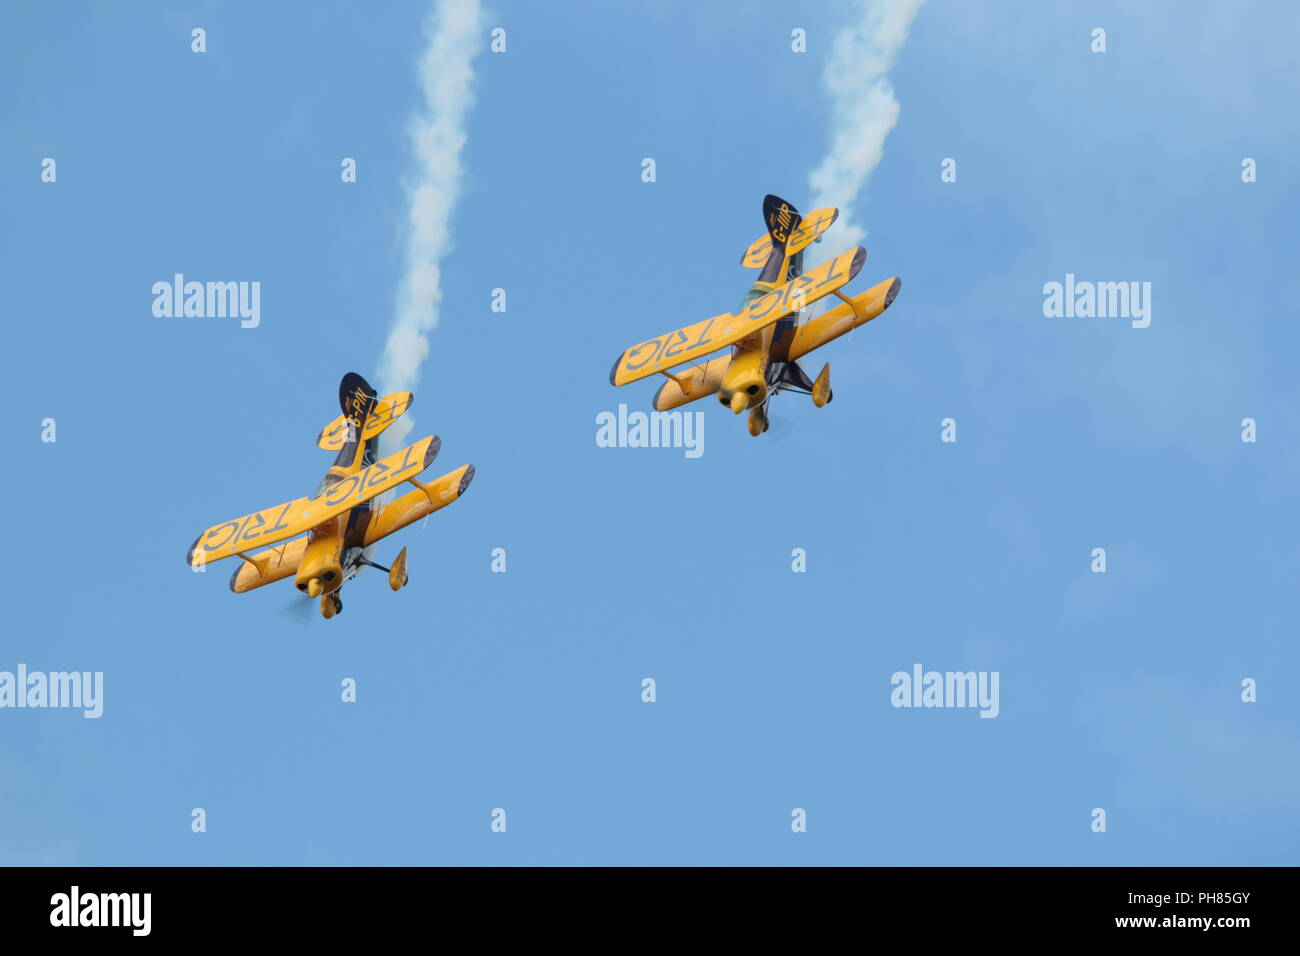 bi-plane display - Stock Image